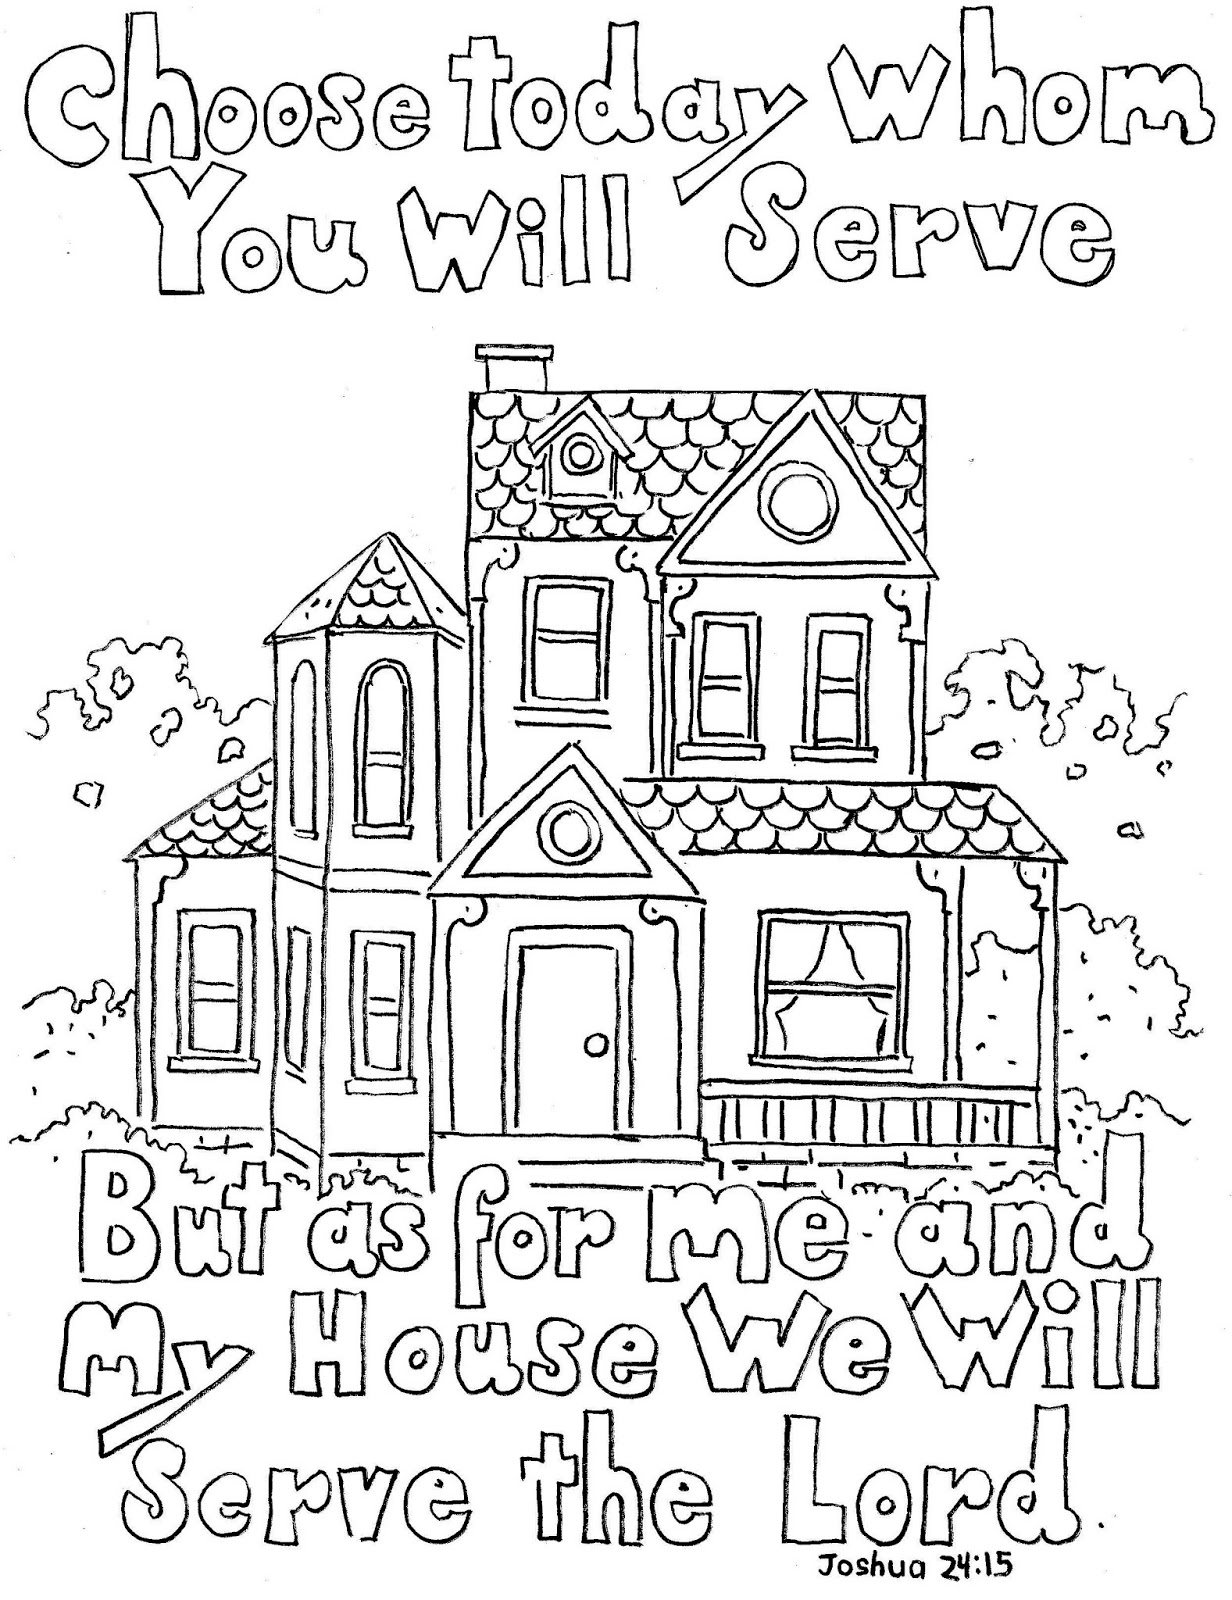 Free coloring pages houses and homes - Joshua 24 15 Print And Color Page But As For Me And My House We Will Serve The Lord